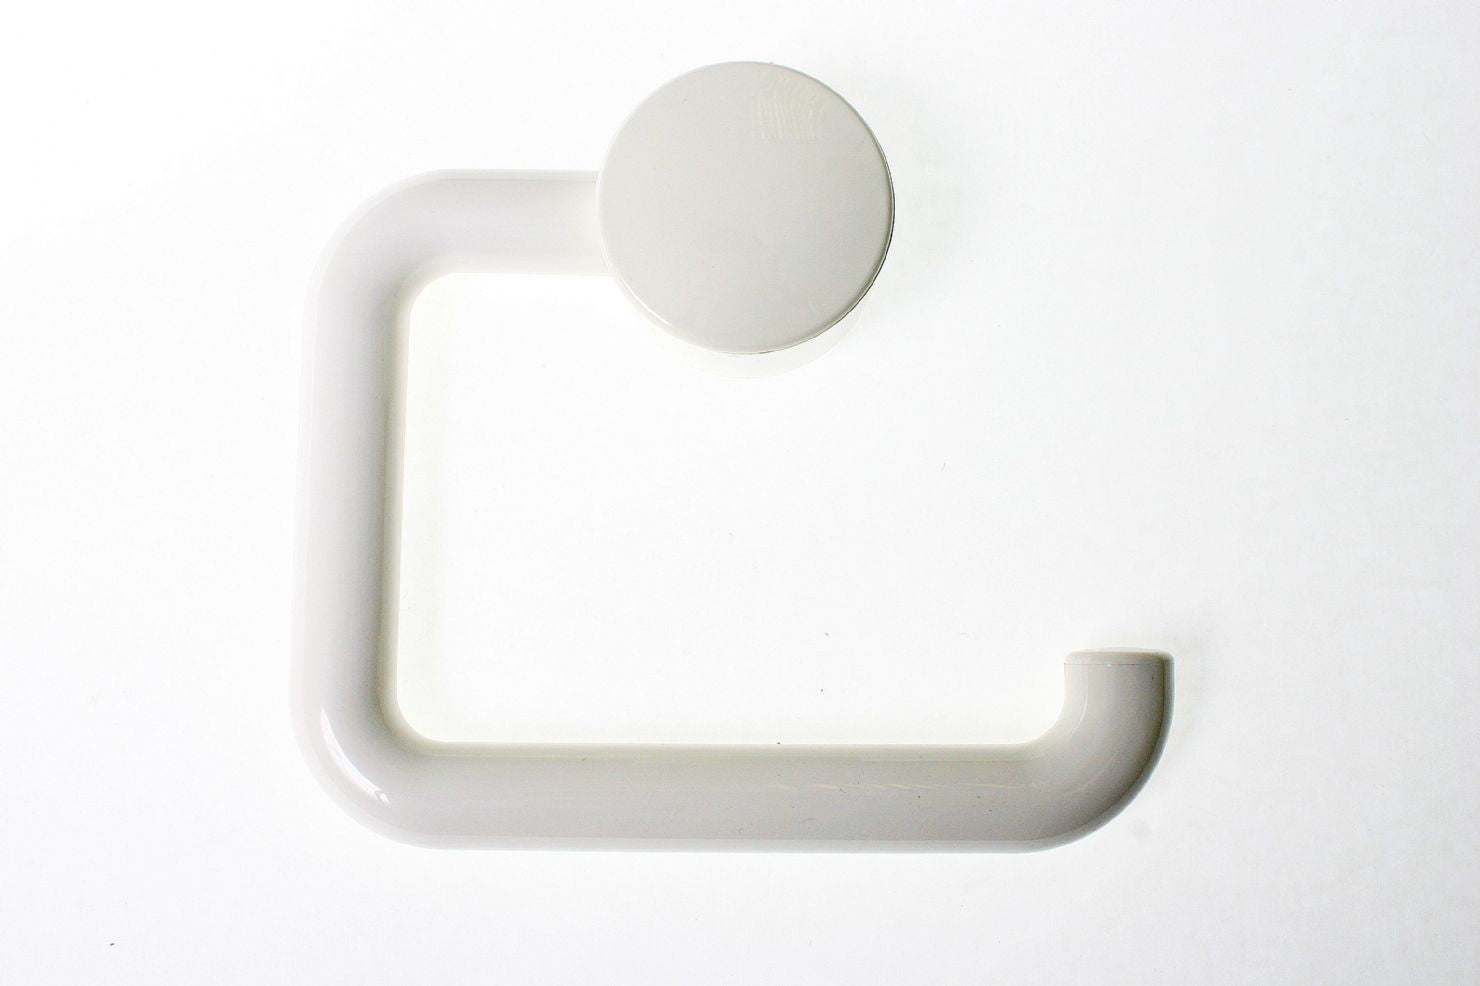 Normbau Toilet Paper Holder (White Product Code: 01010125, Grey Product Code: 01010125 -719)